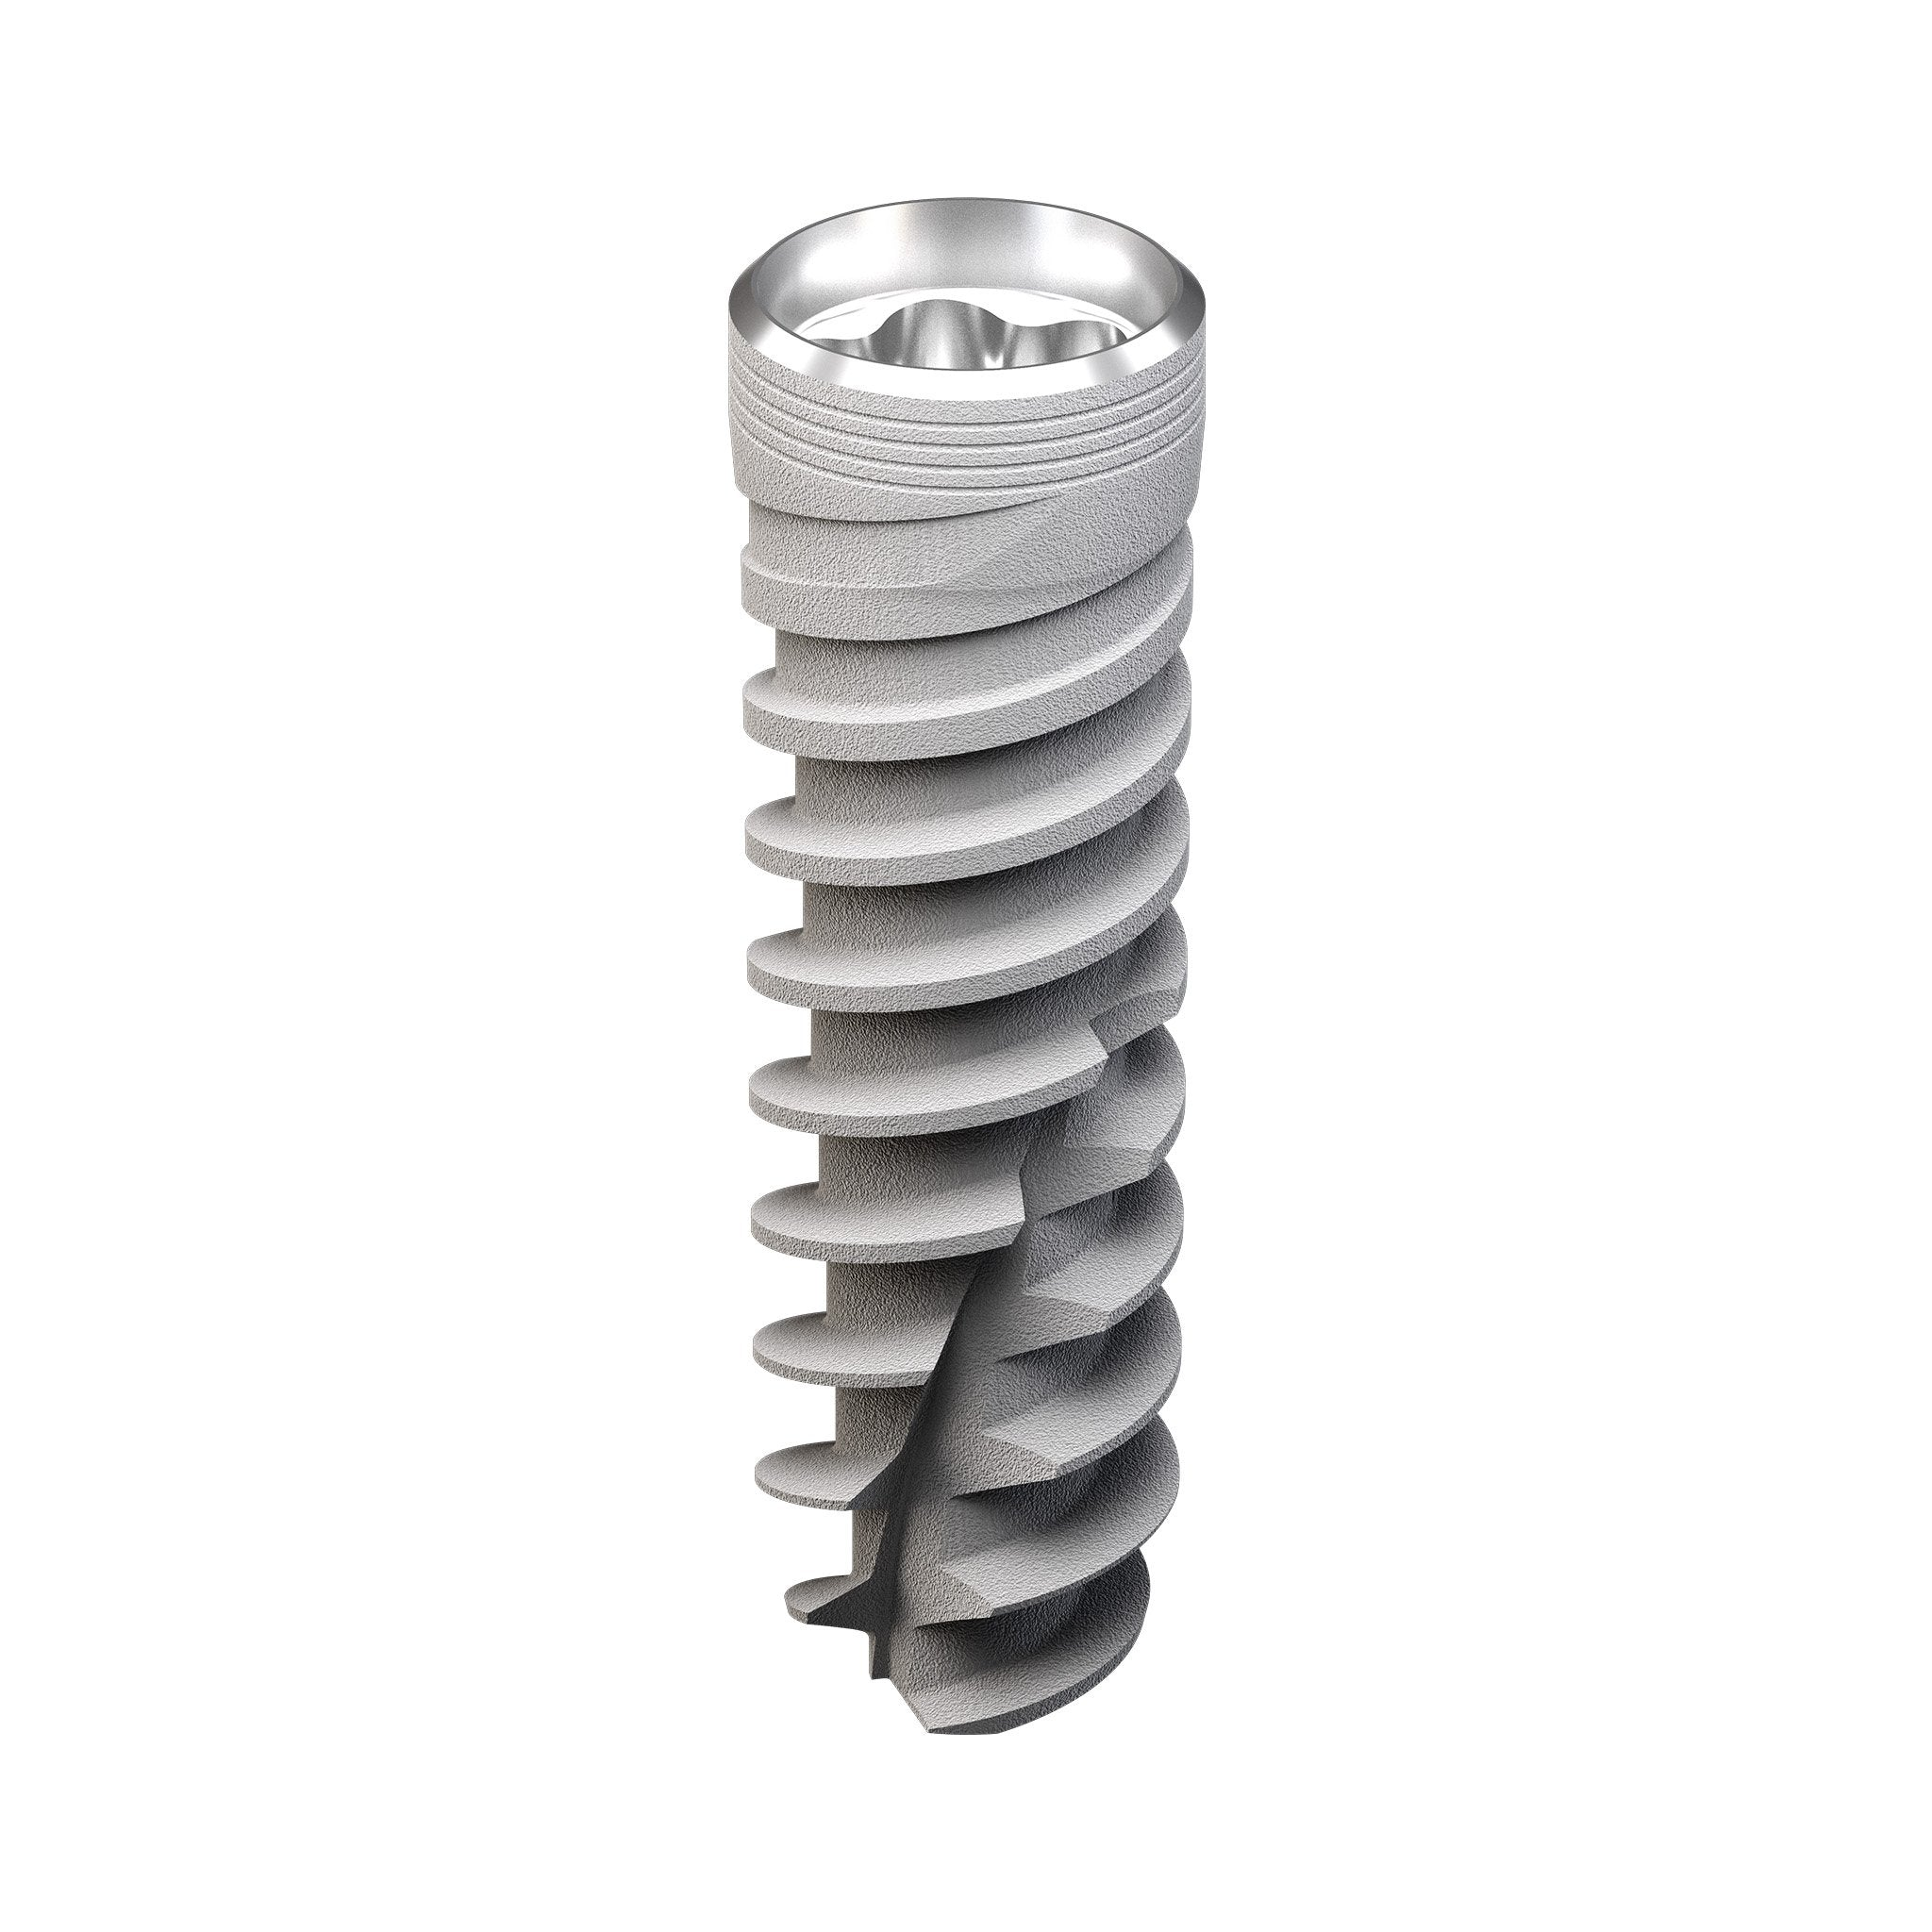 Prima Plus™ Implant WD Ø 5.0 x 8.0mm | K3